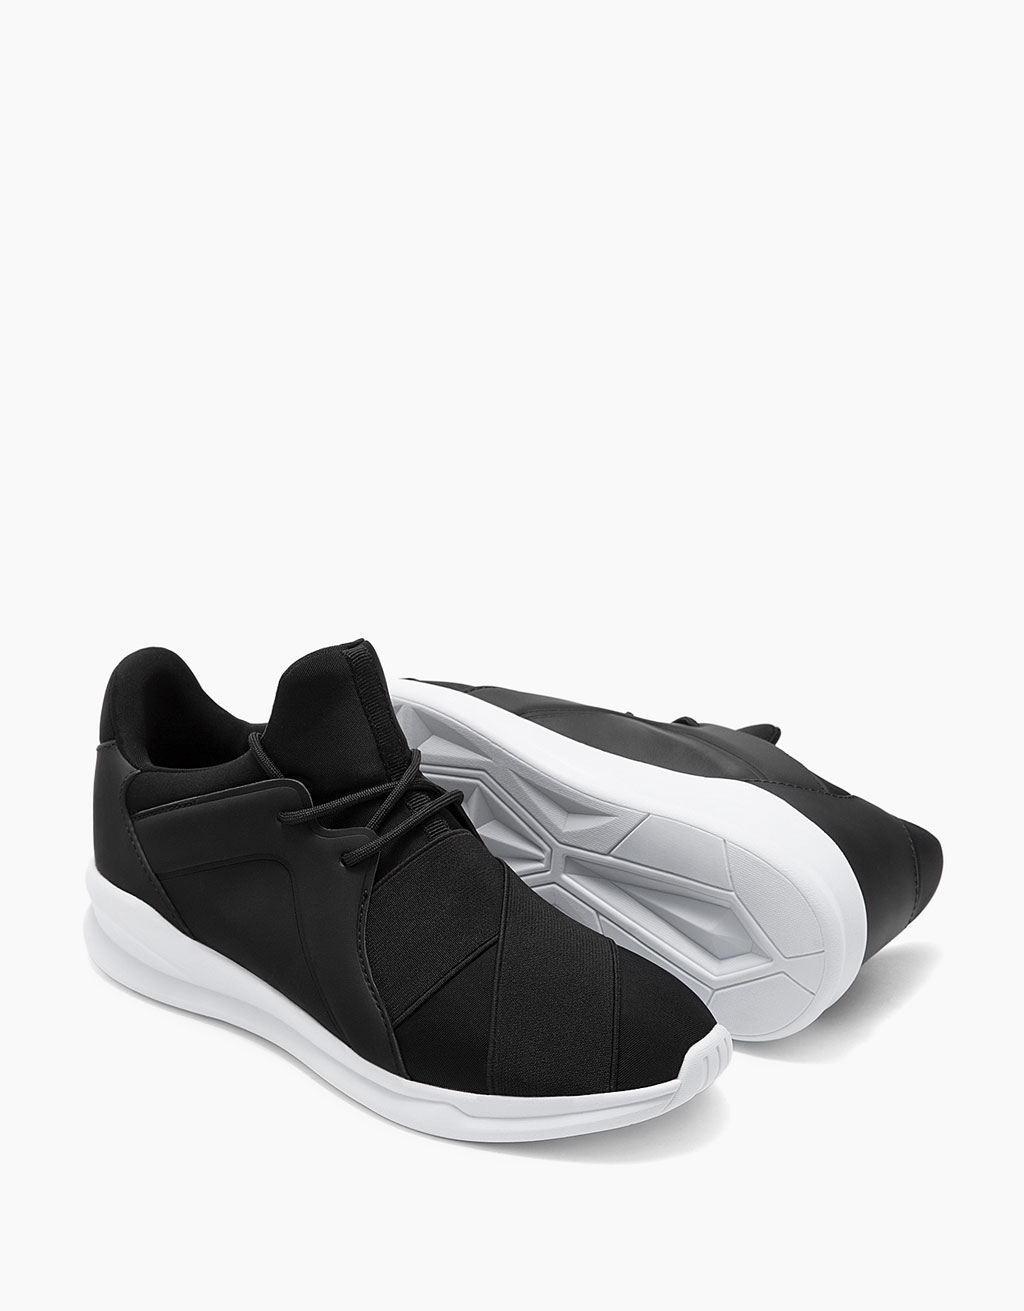 Elastic technical sneakers with pull-up tab